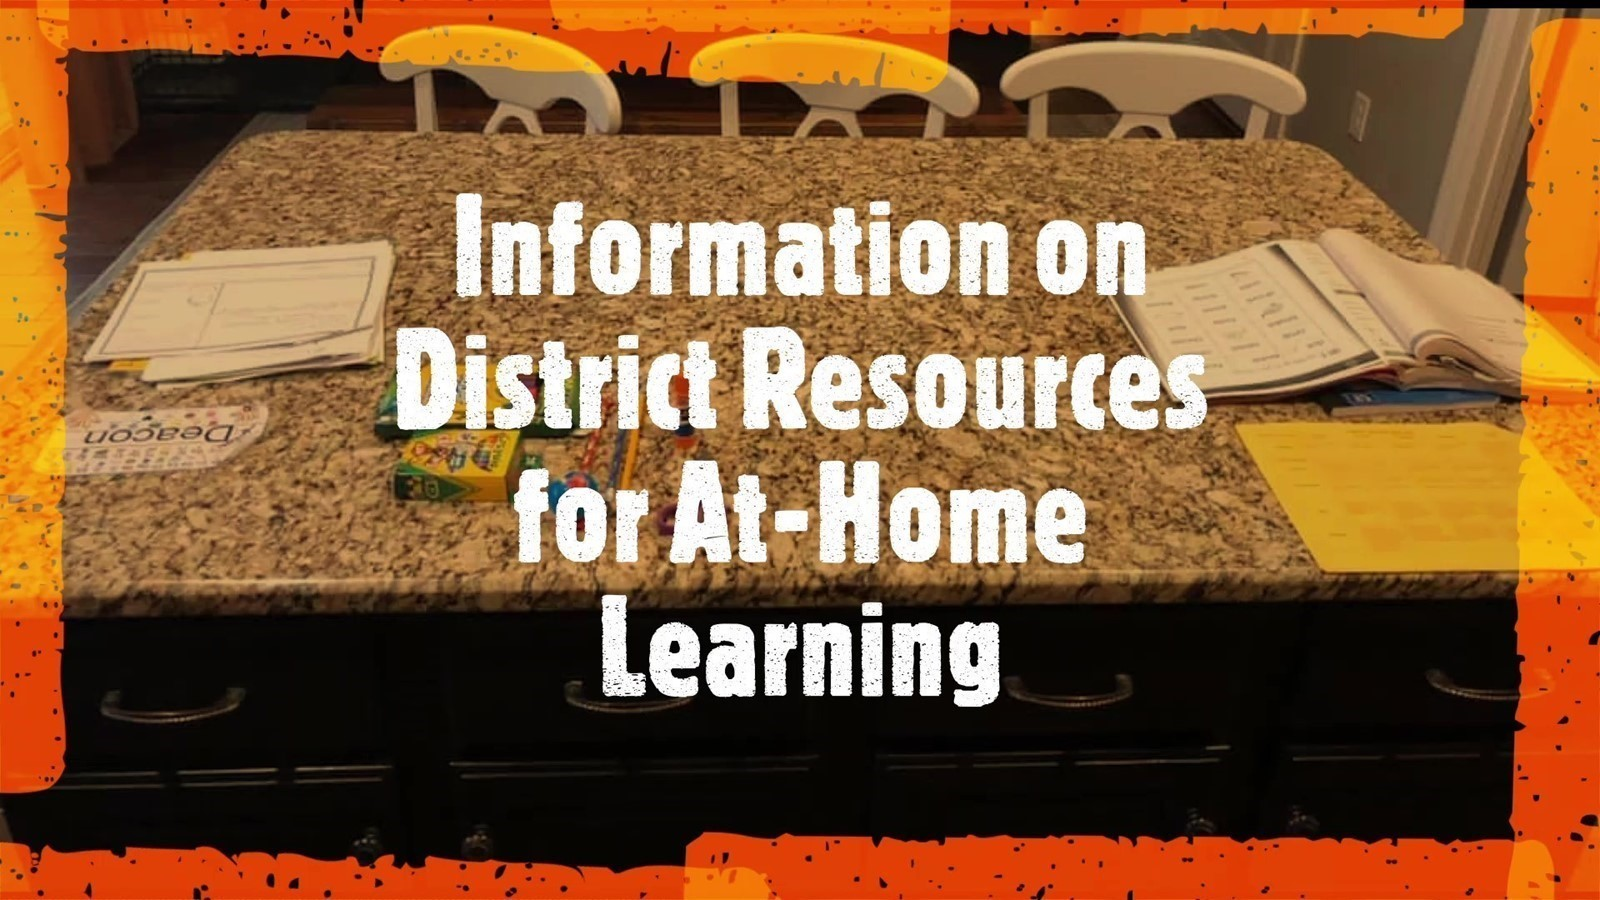 At-Home Learning